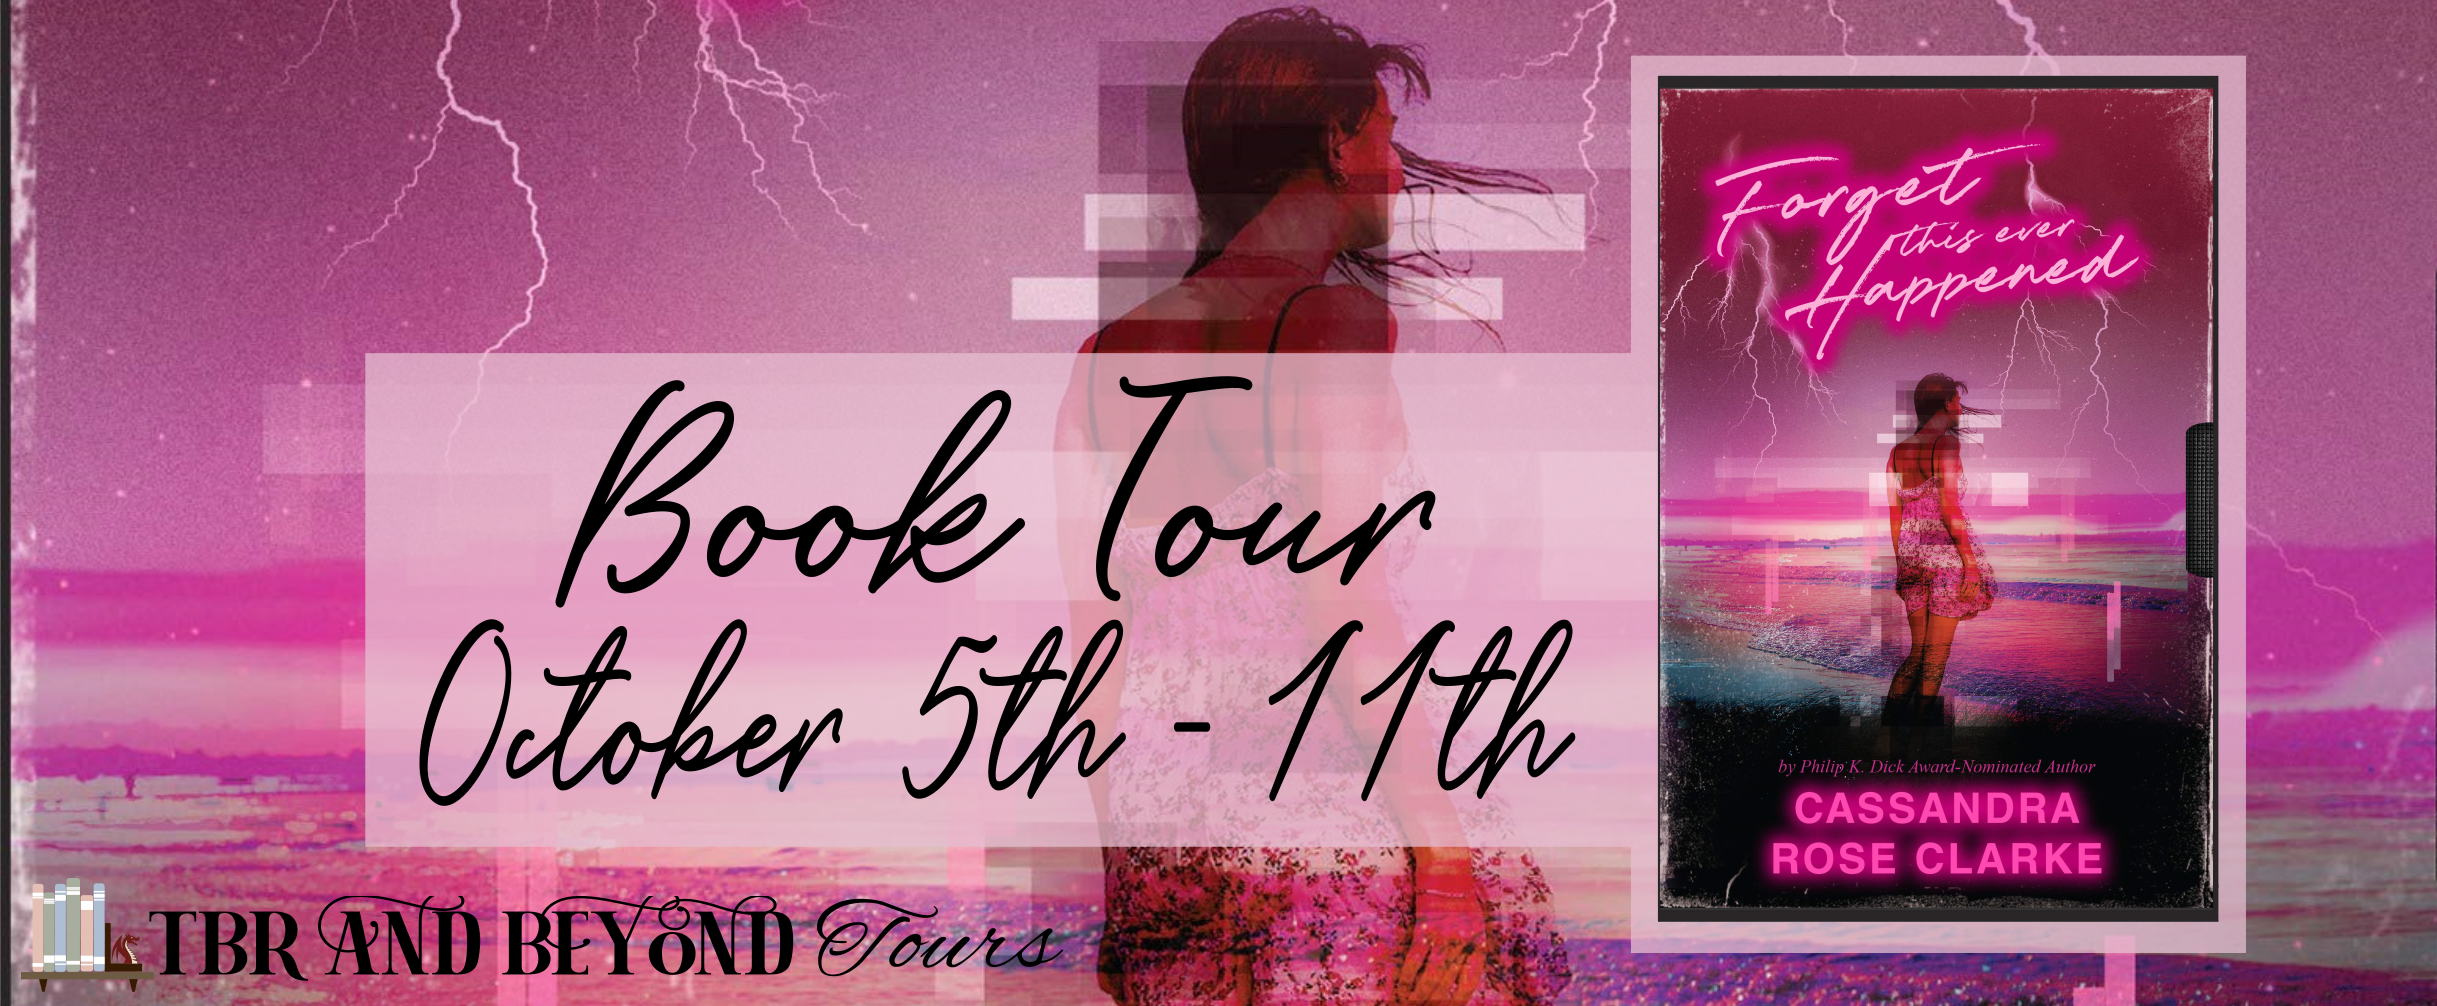 Blog Tour: Forget This Ever Happened by Cassandra Rose Clarke (Interview + Review + Giveaway!!!)